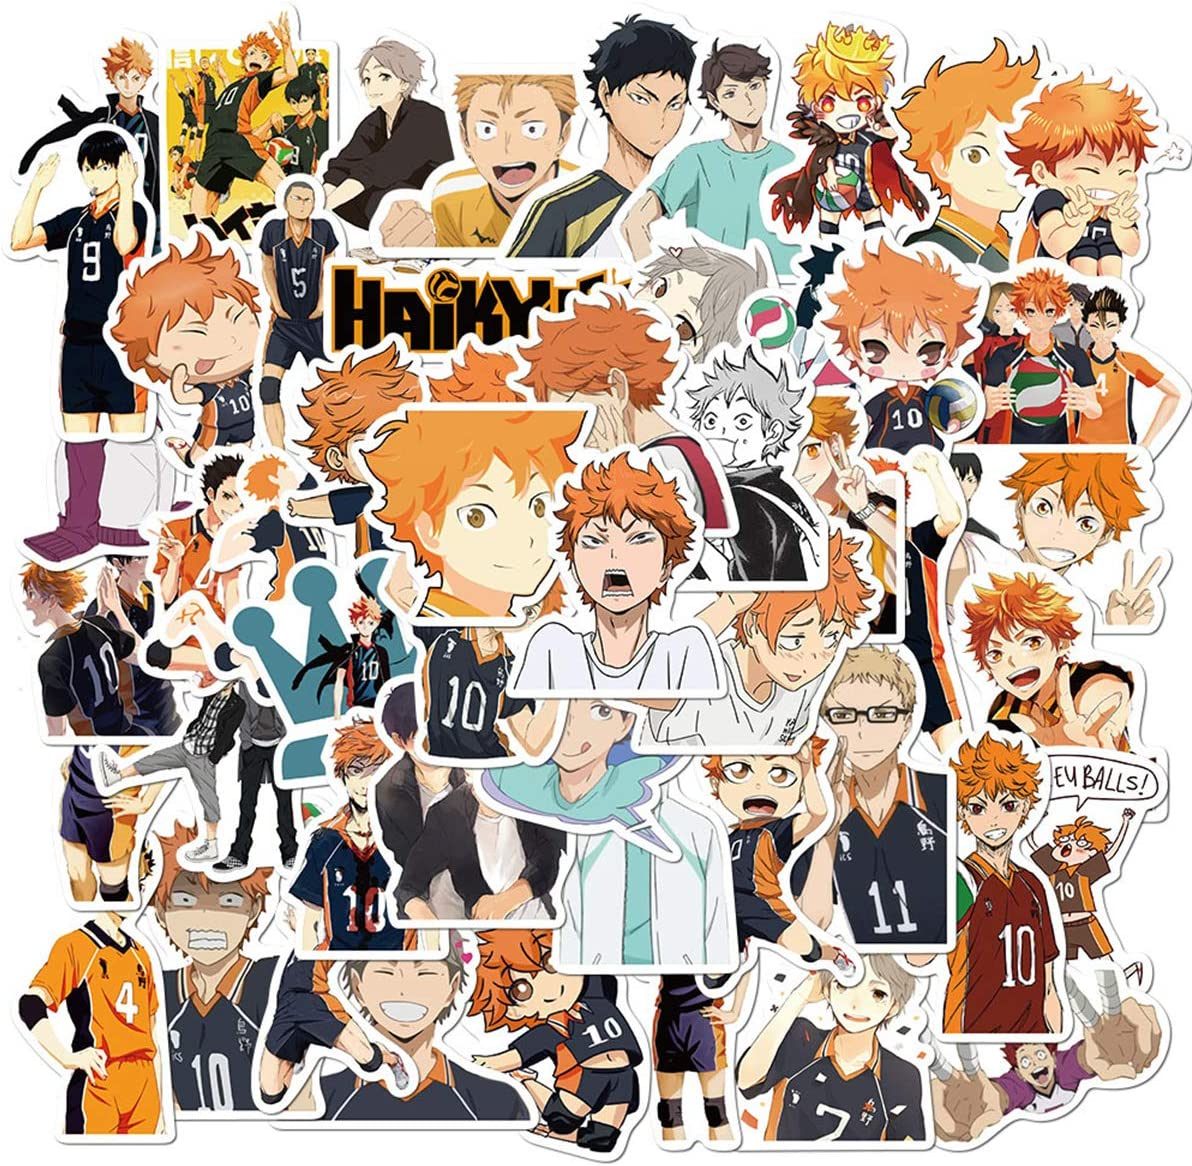 Haikyuu Anime Stickers 50 PCS for Laptop Water Bottle Luggage Snowboard Bicycle Skateboard Decal for Kids Teens Adult Waterproof Aesthetic Stickers (Haikyuu)